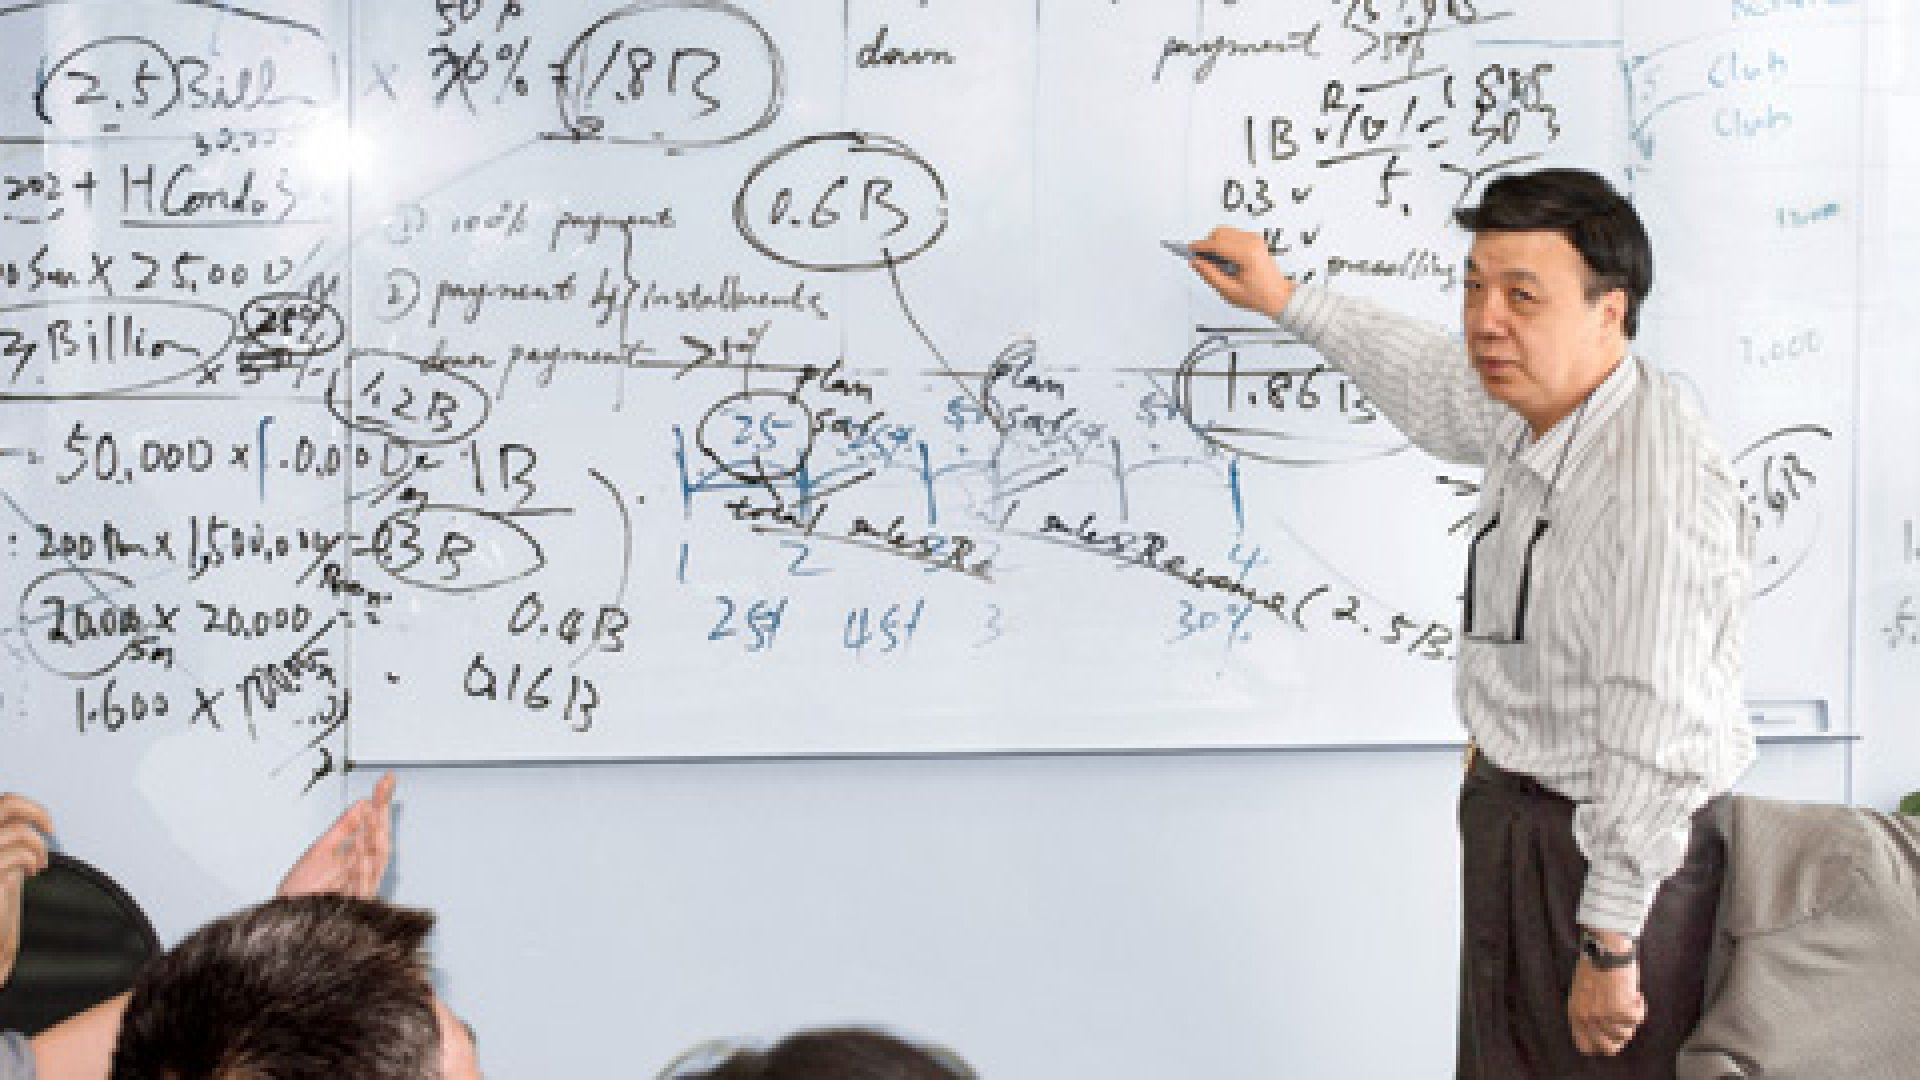 <b>Voilà</b> It's the moment of truth: Michael Lee sketches out how a complex flow of cash and debt will see his company's massive Nanjing project through to completion.